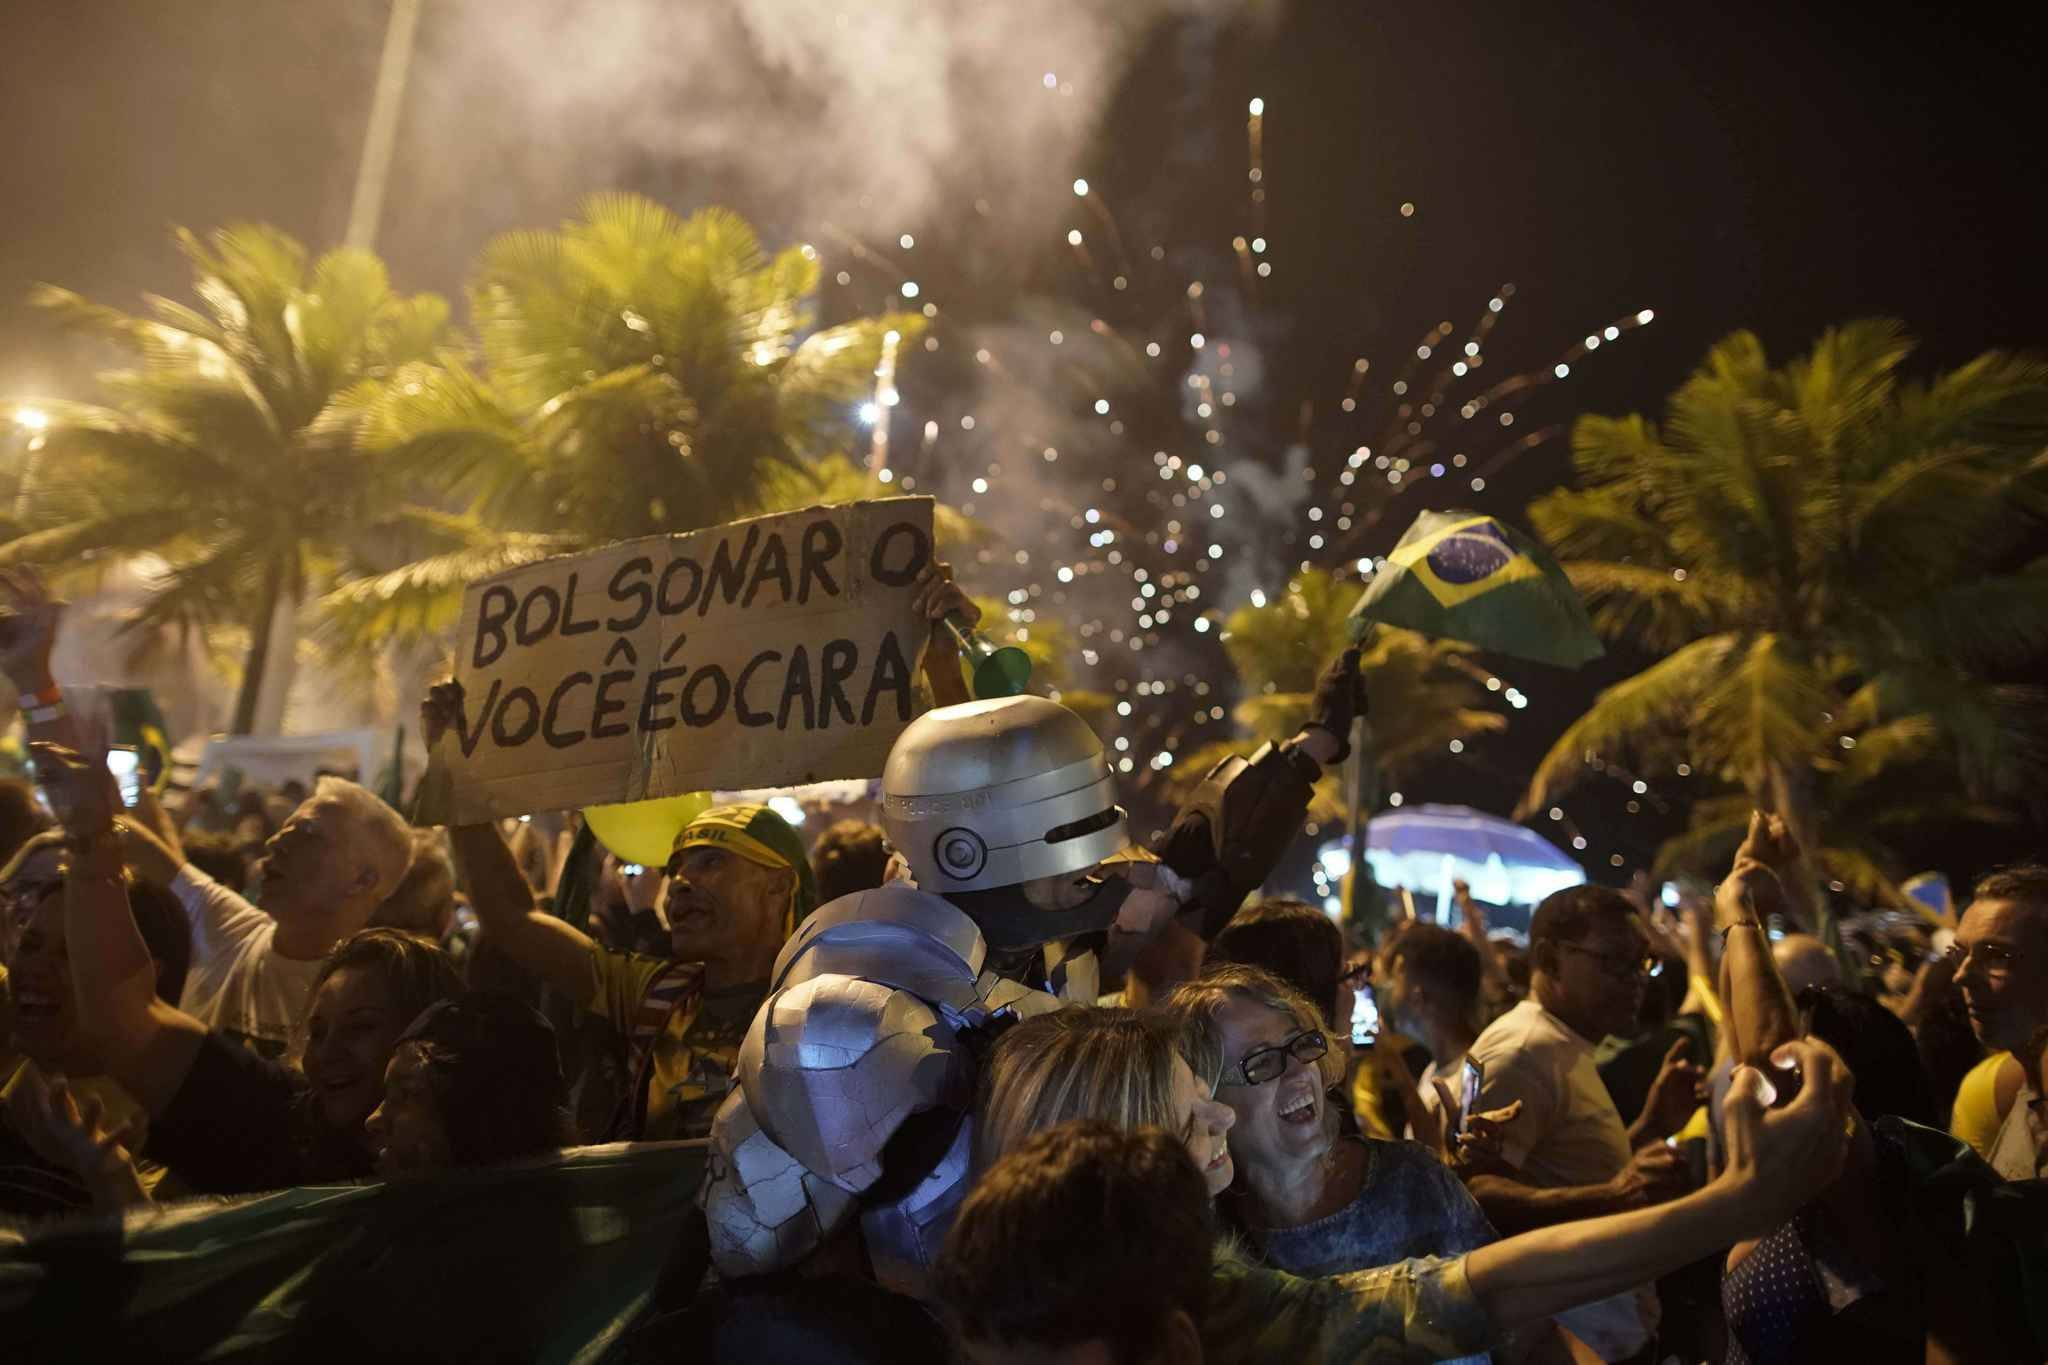 Supporters of Jair Bolsonaro celebrate in front of his residence in Rio de Janeiro, Brazil, Sunday, Oct. 28, 2018, after he was declared the winner of the runoff election . Brazil's Supreme Electoral Tribunal declared the far-right congressman the next president of Latin America's biggest country.